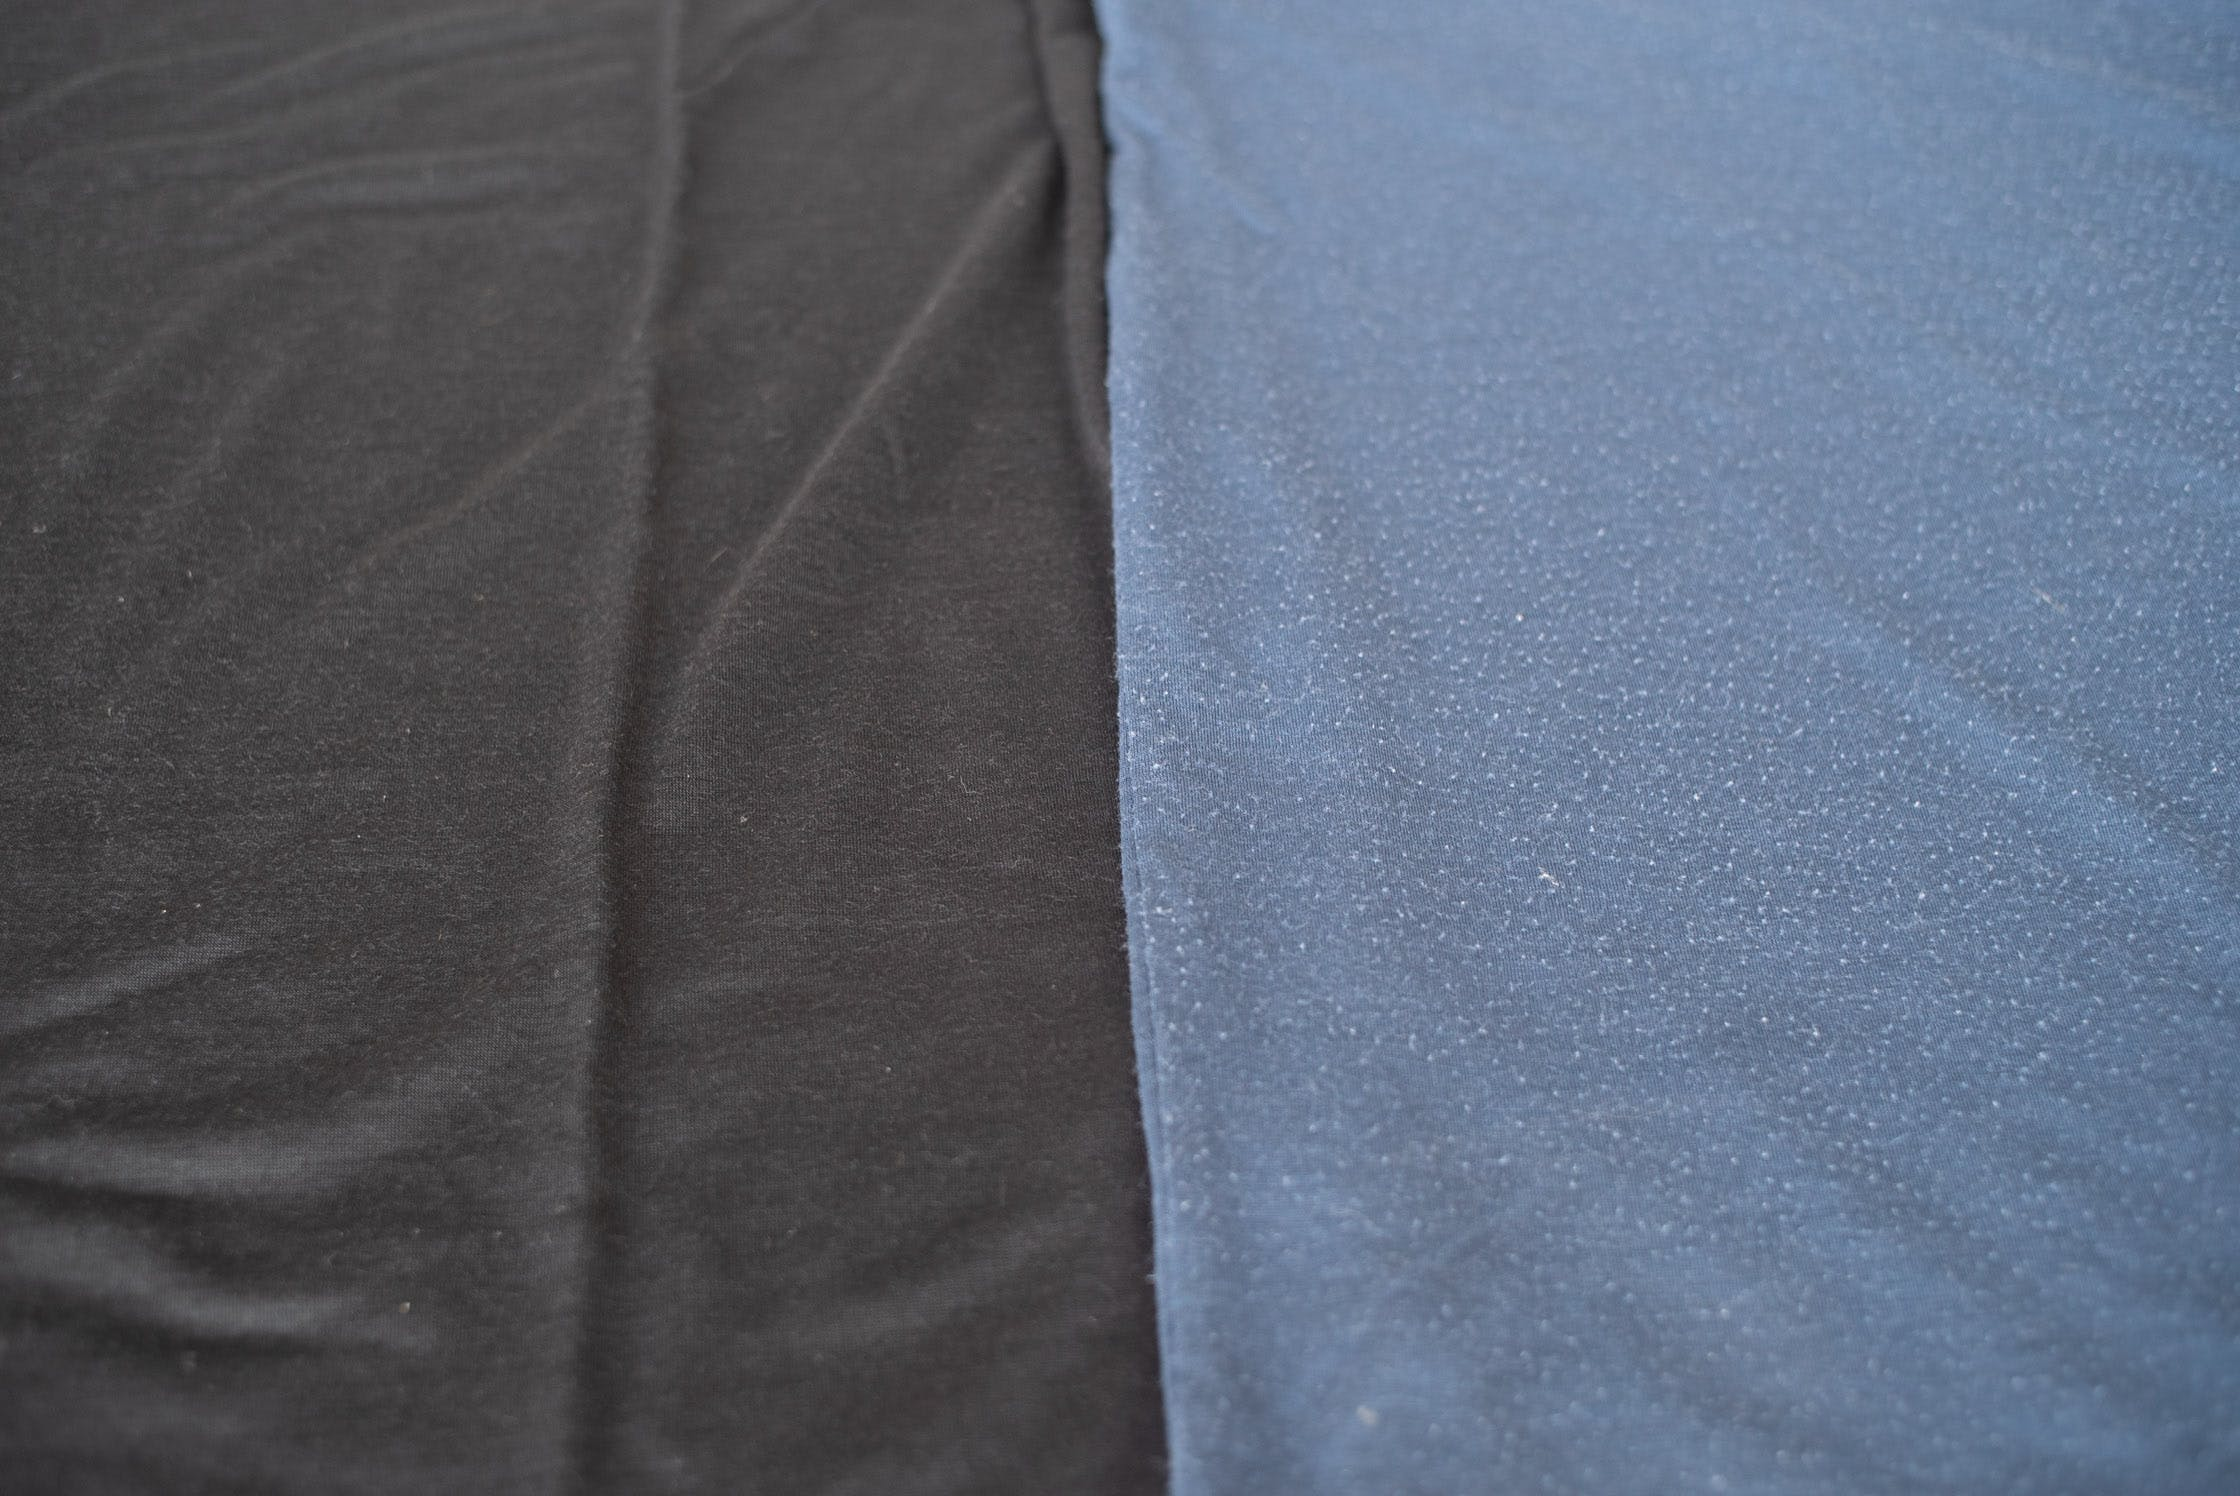 Left: New Runweight Merino T-shirt in Black VS. Right: Used Runweight Merino T-shirt in Sea Blue